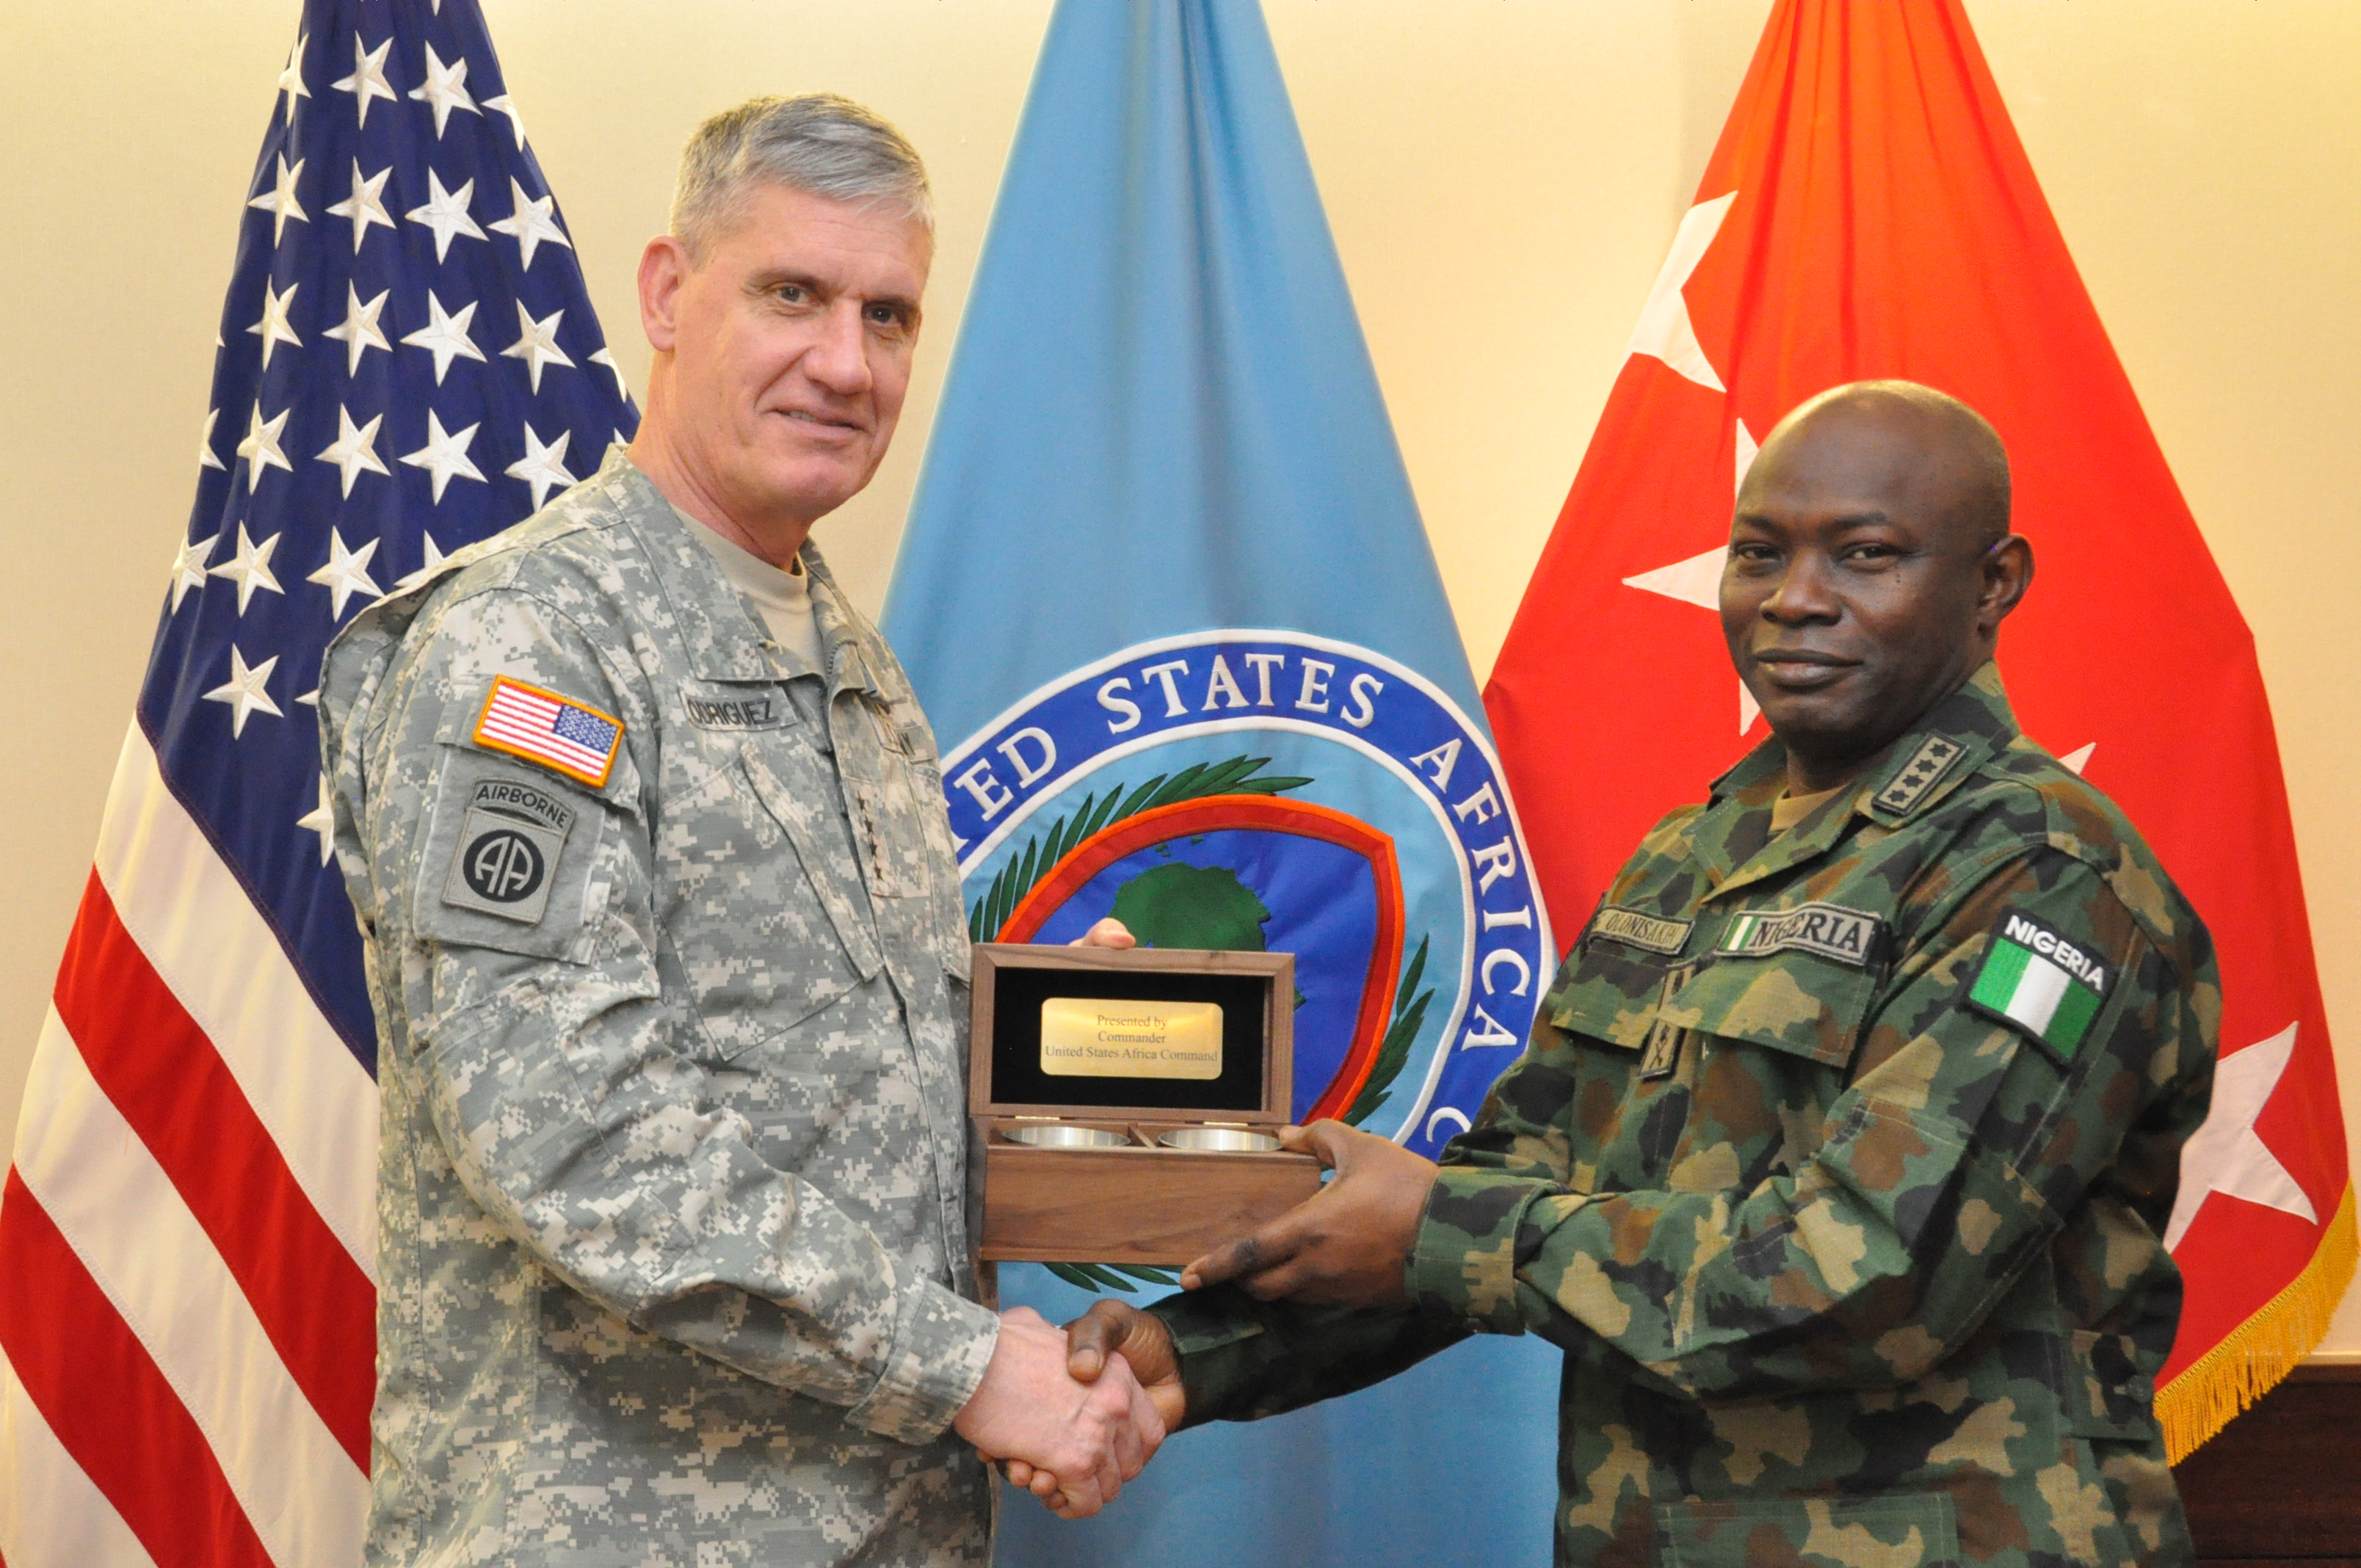 Gift exchange: Gen. David Rodriguez, commander, U.S. Africa Command (left), presents a gift of appreciation to Gen. Abayomi Olonisakin, Nigeria chief of defence staff. AFRICOM hosted a two-day meeting that brought together AFRICOM component commanders and several senior members of the Nigerian military.  The purpose of the visit was to reinforce the importance of a strong US-Nigeria security cooperation relationship, with topics focused on ways to counter terrorism, joint operations, logistics and maritime security in the Gulf of Guinea, Feb. 10, 2016, U.S. Army Garrison Stuttgart, Germany. (Photo by Brenda Law, U.S. Africa Command Public Affairs/RELEASED)